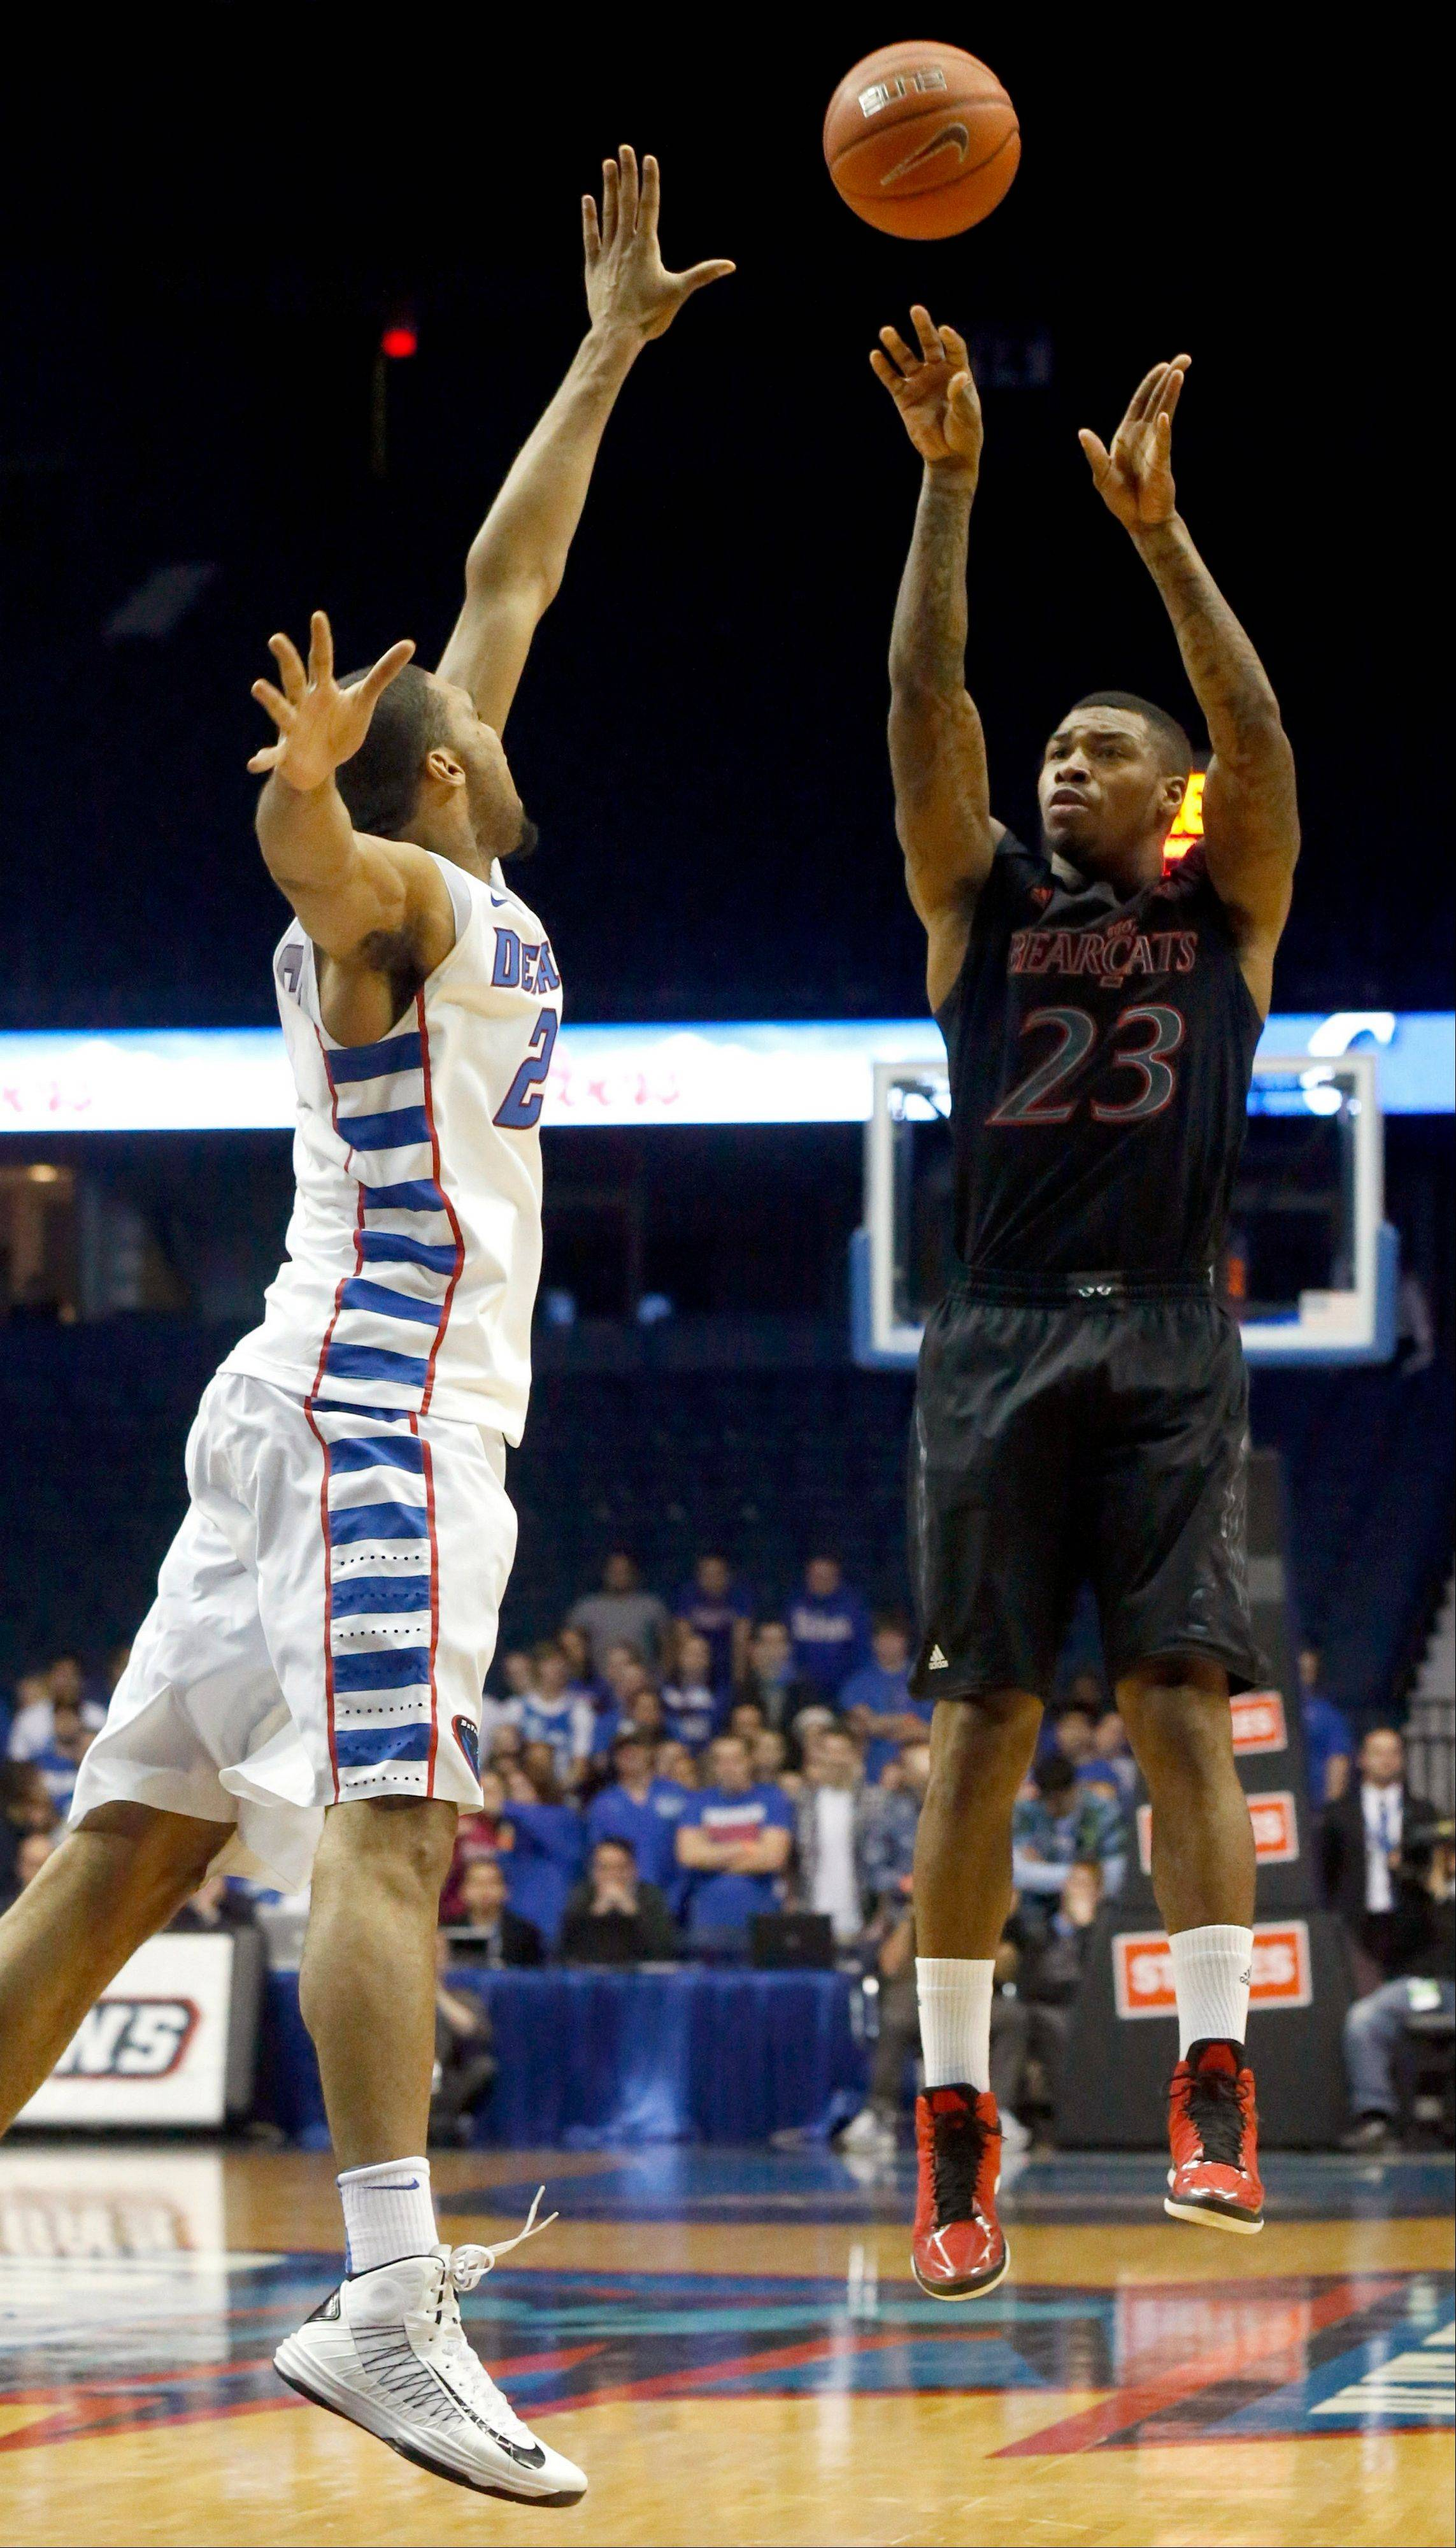 Cincinnati guard Sean Kilpatrick (23) shoots over DePaul forward Donnavan Kirk during the first half of an NCAA college basketball game, Tuesday, Jan. 15, 2013, in Rosemont, Ill.